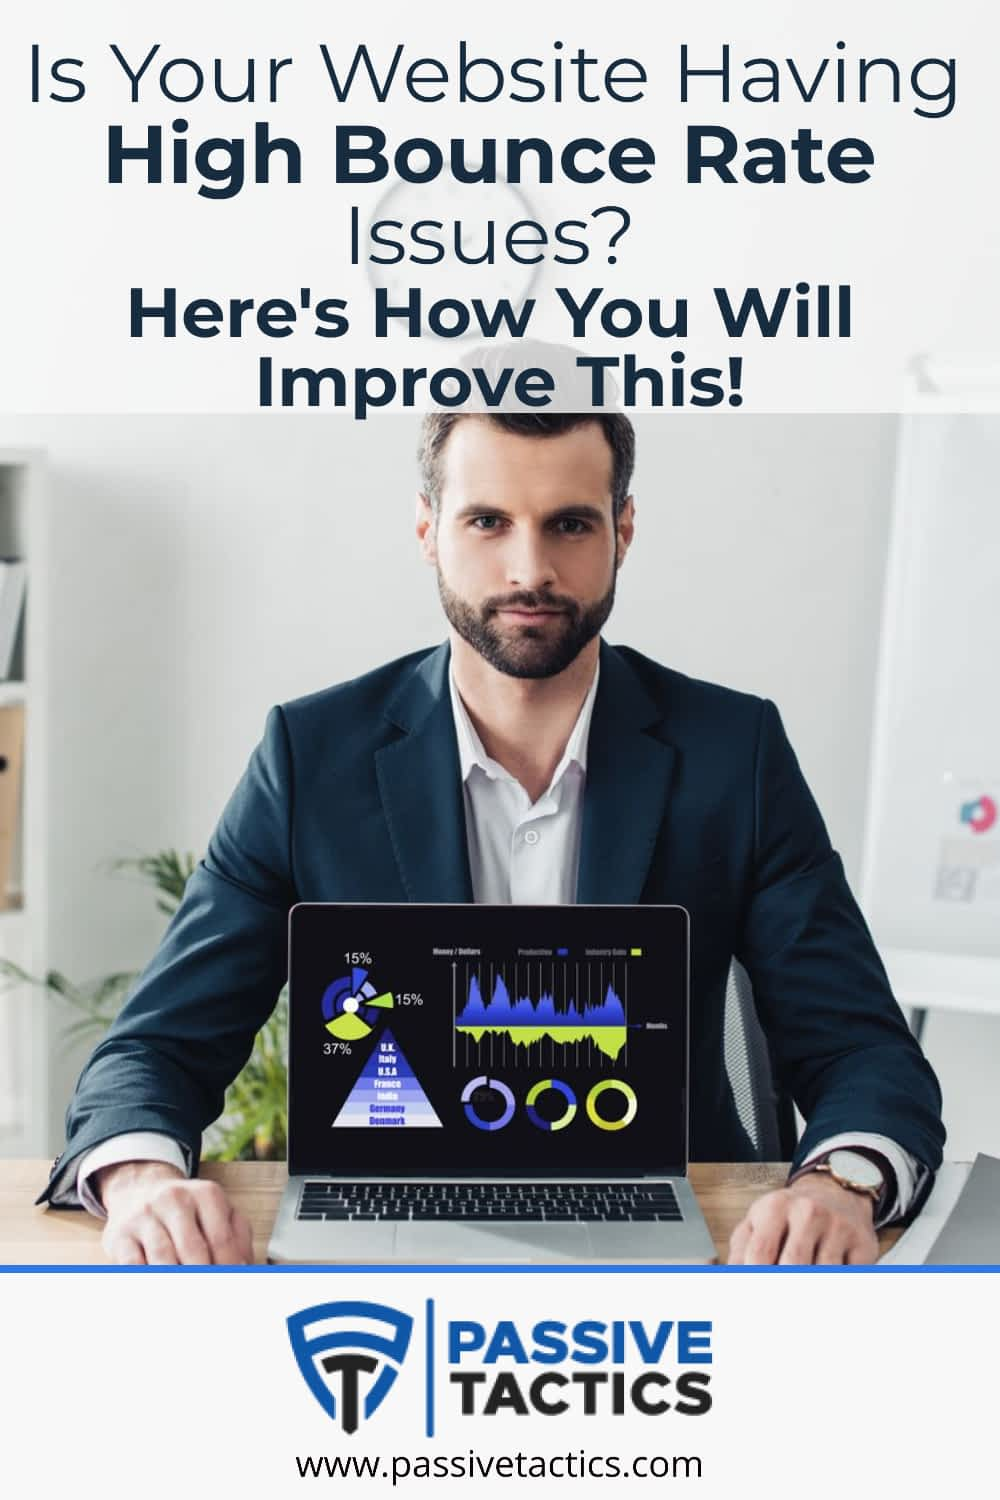 High Bounce Rate Issues - How To Improve This!